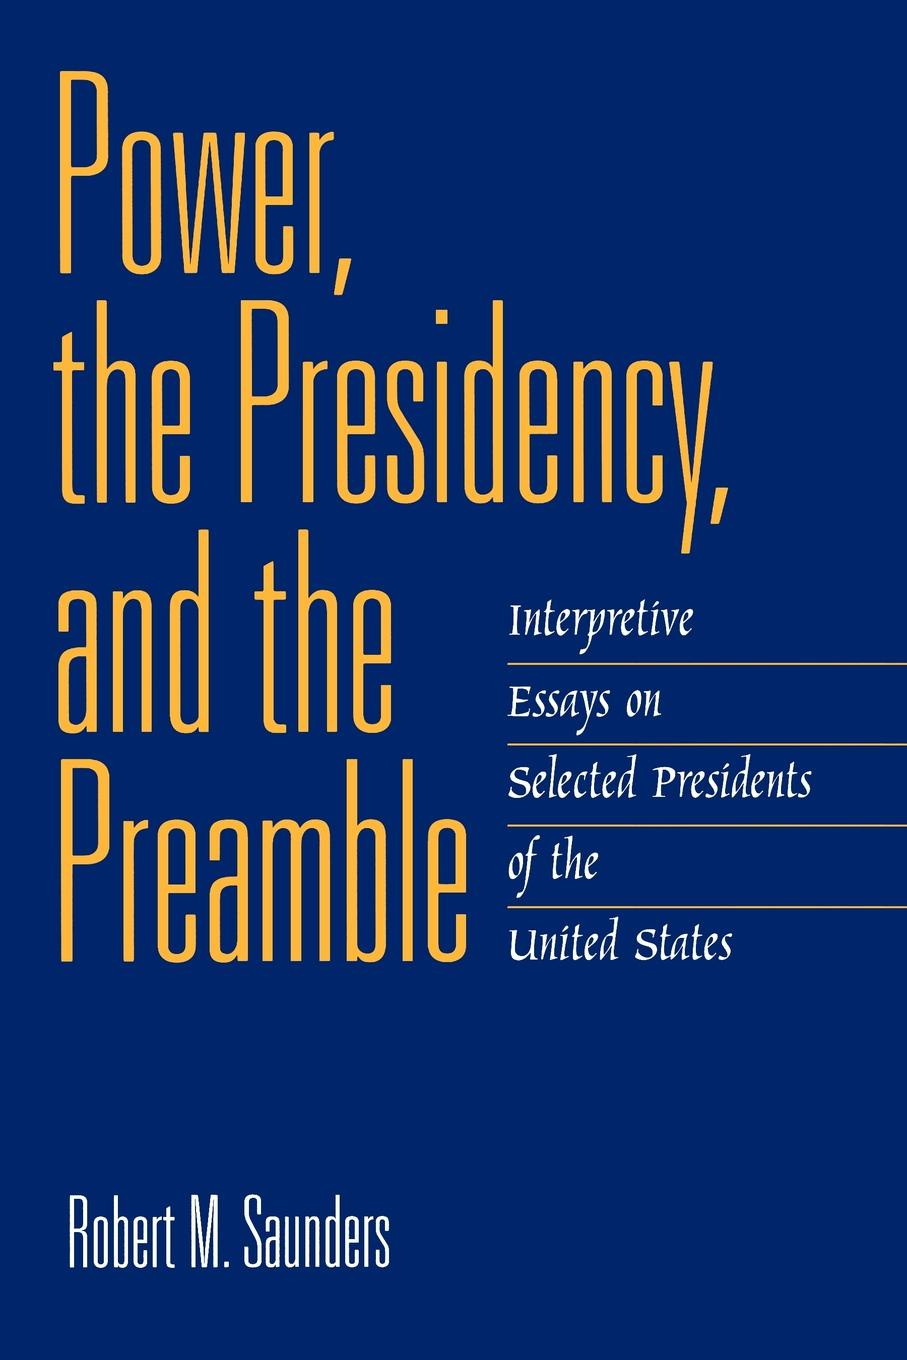 Power, the Presidency, and the Preamble. Interpretive Essays on Selected Presidents of the United States